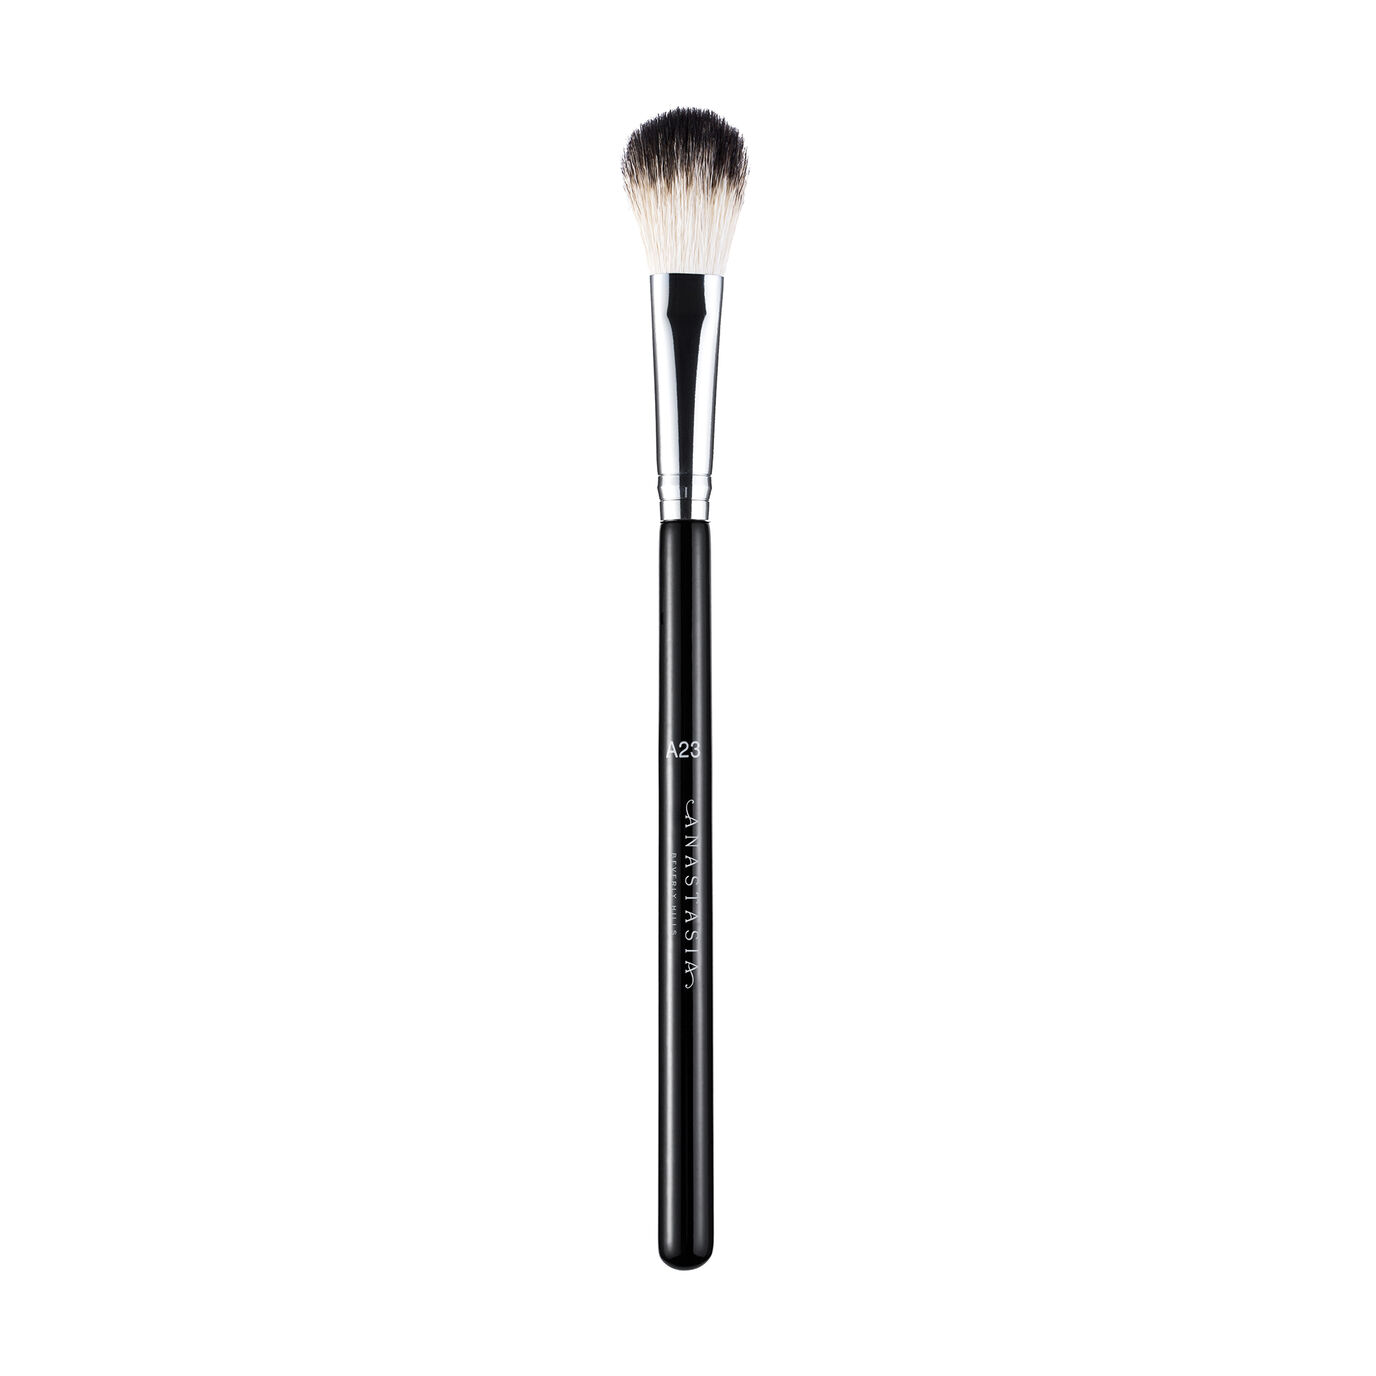 A23 Pro Brush - Large Tapered Blending Brush